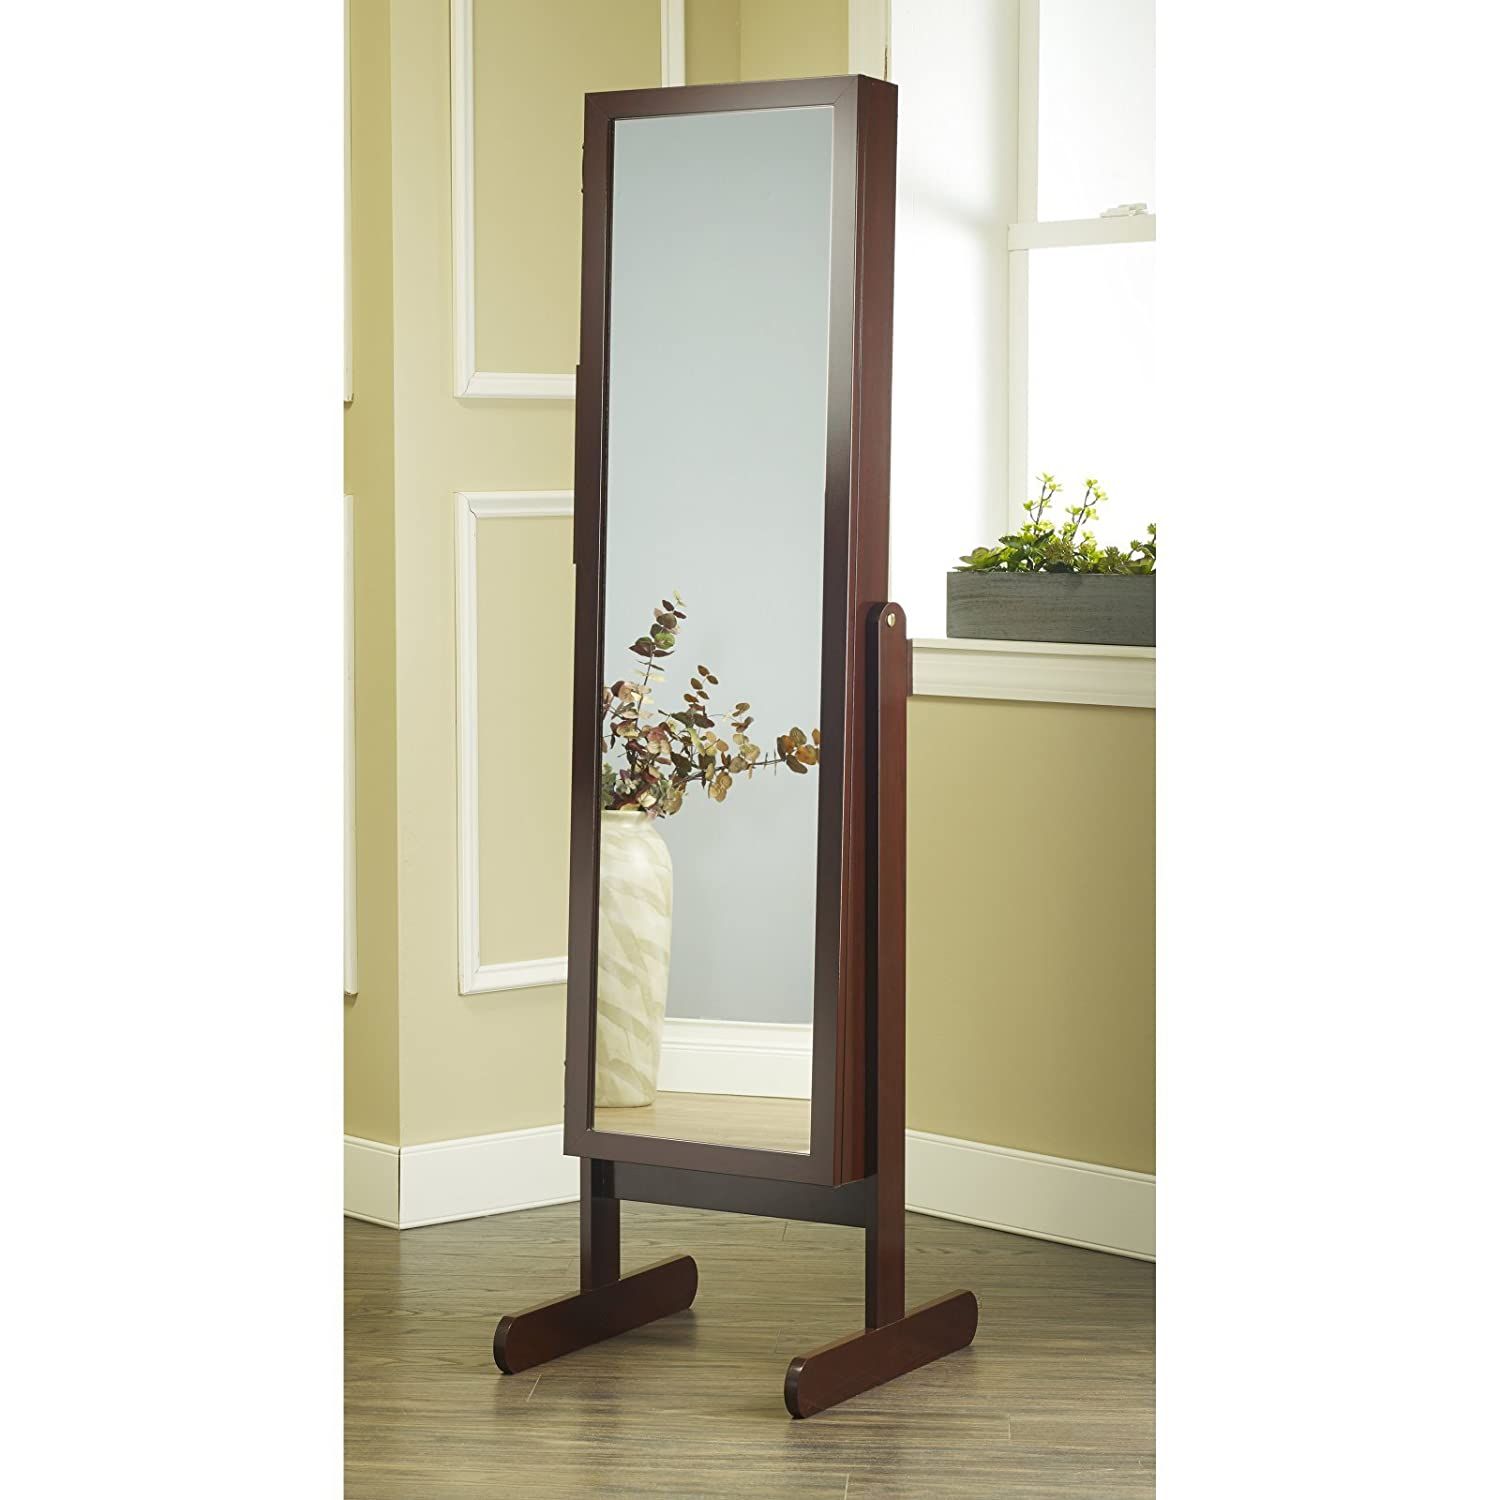 amazoncom plaza astoria free standing jewelry armoire cabinet style jewelry armoire with adjustable stand full dressing mirror u0026 vanity mirror for